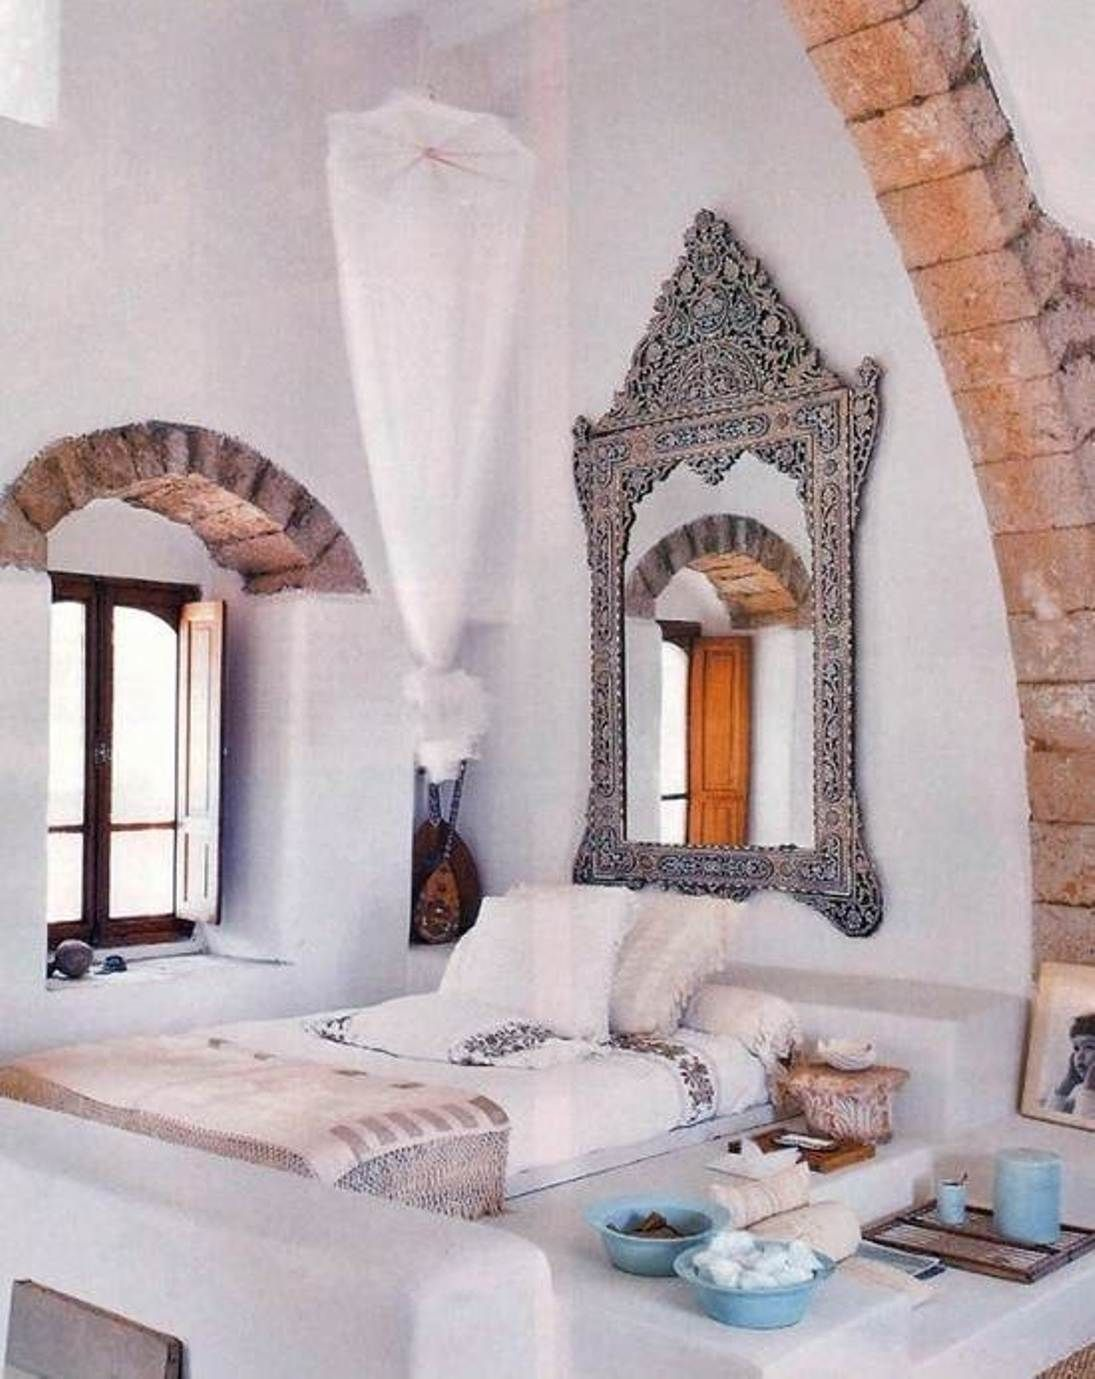 moroccan bedroom decor moroccan theme moroccan style moroccan inspired